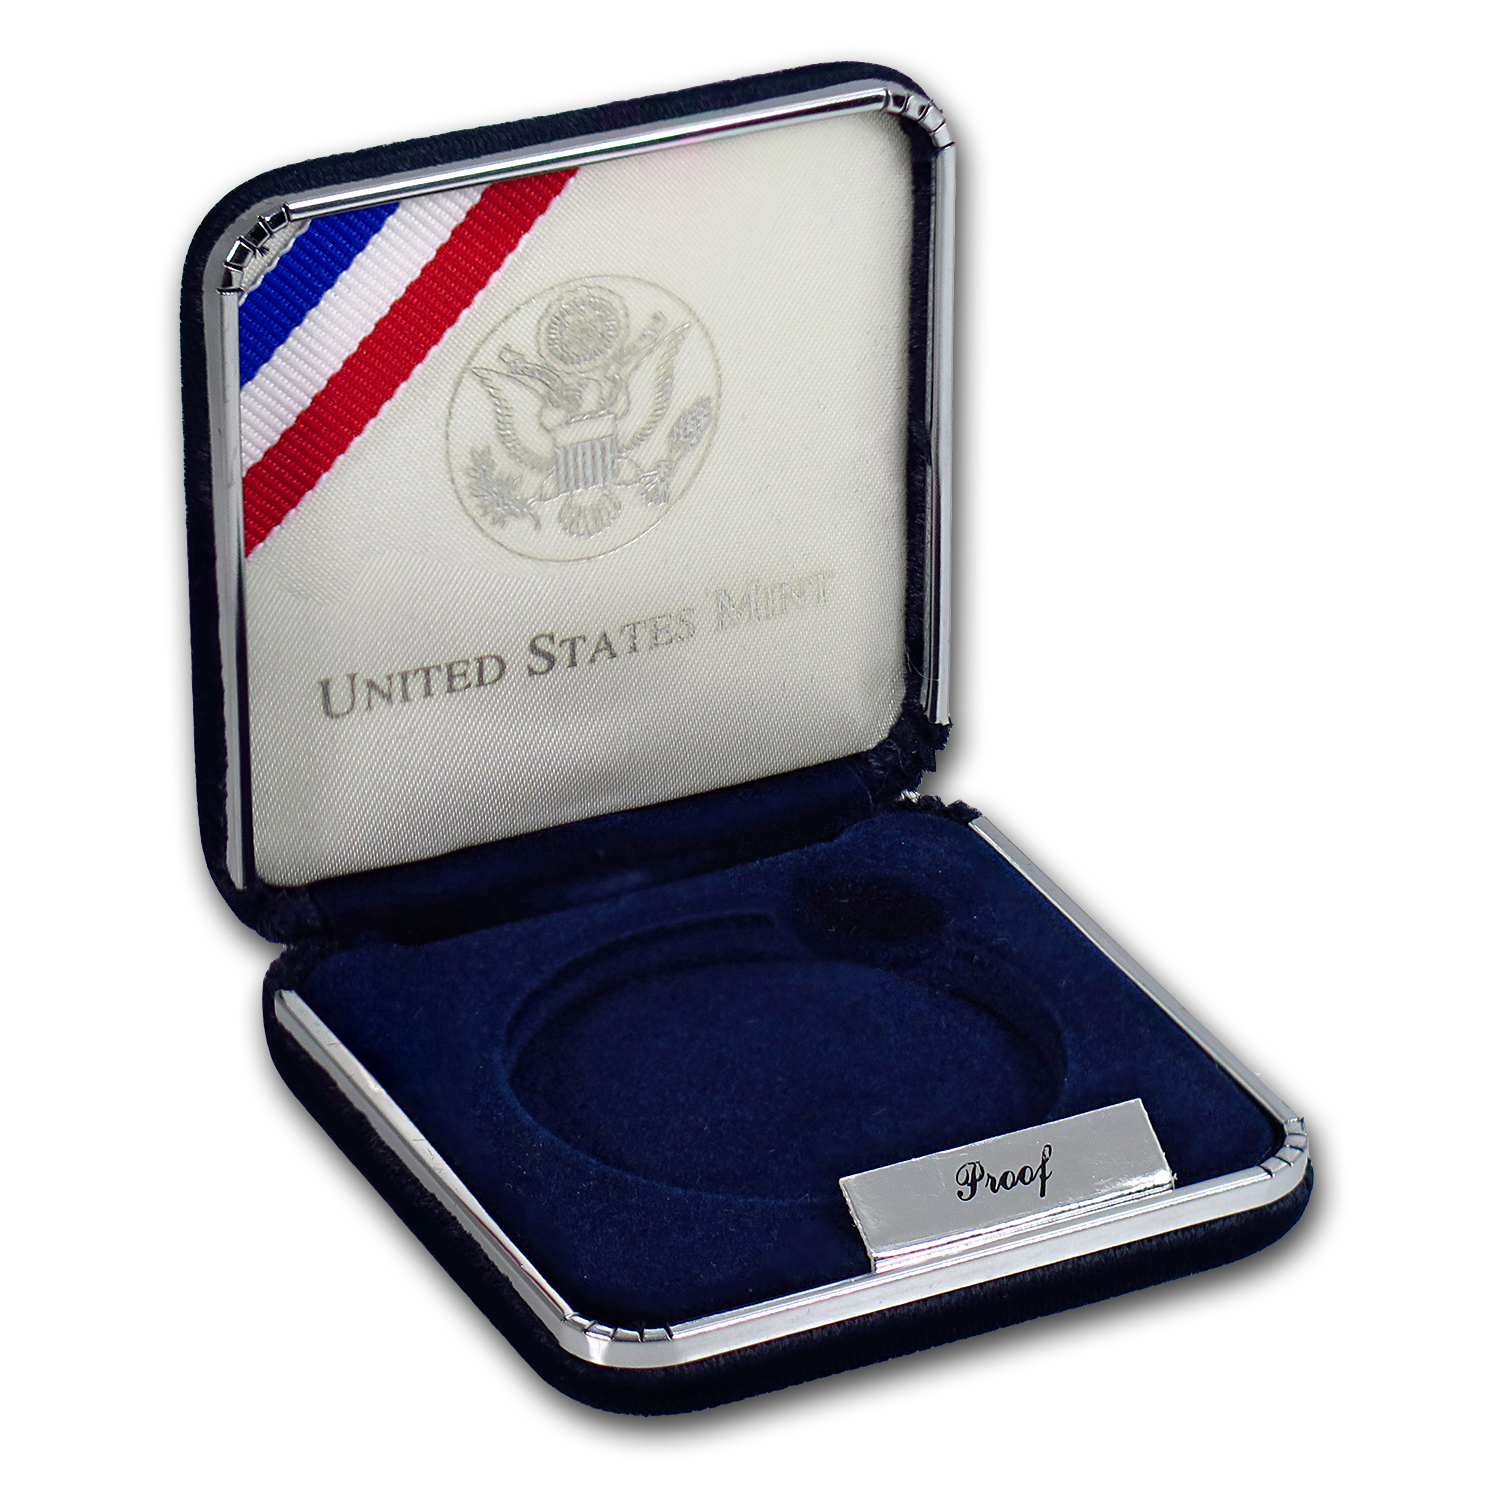 OGP Box & COA - 1997-P Law Enforcement $1 Silver Proof